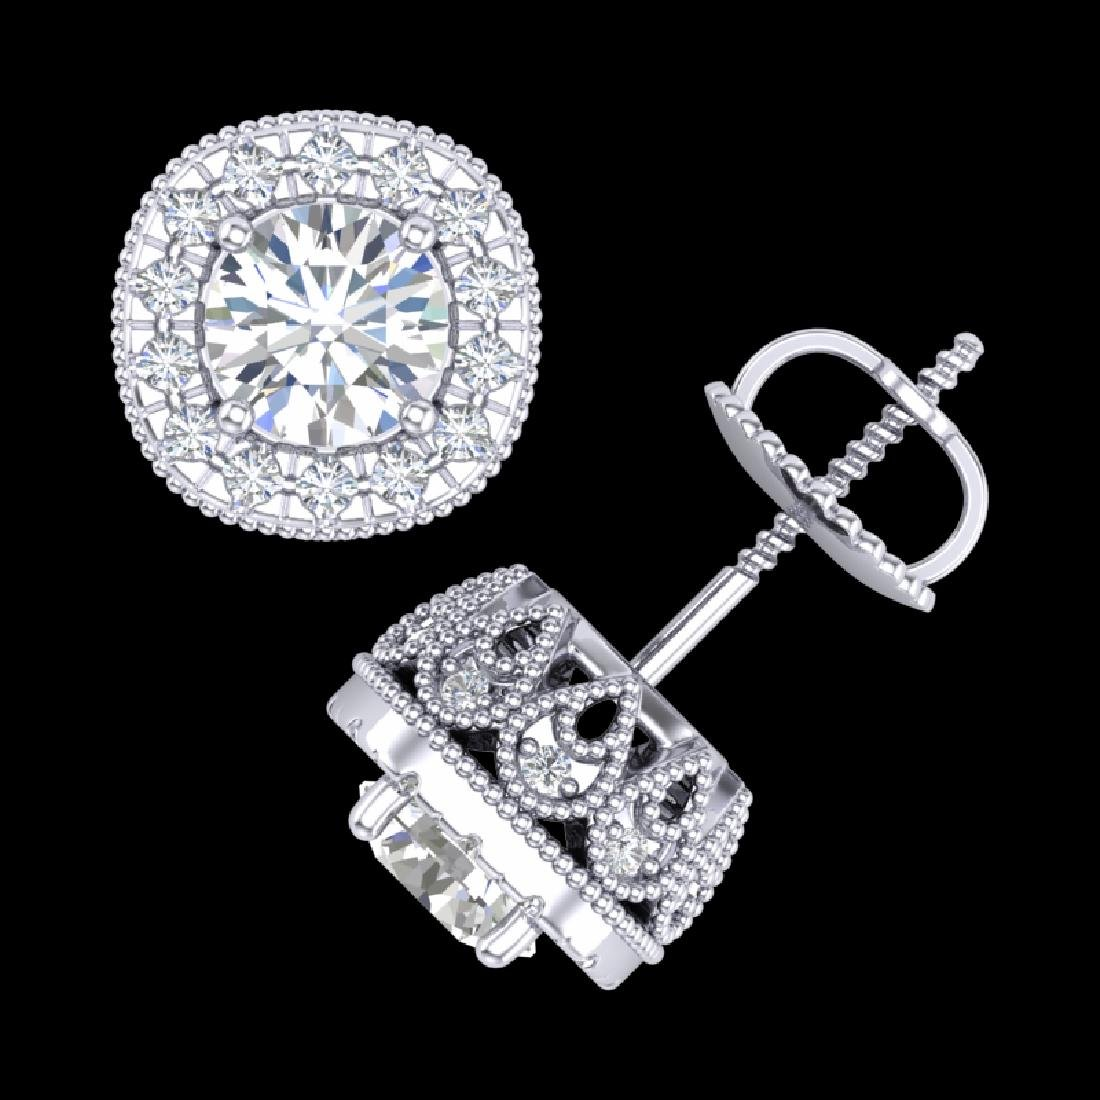 1.69 CTW VS/SI Diamond Solitaire Art Deco Stud Earrings - 3